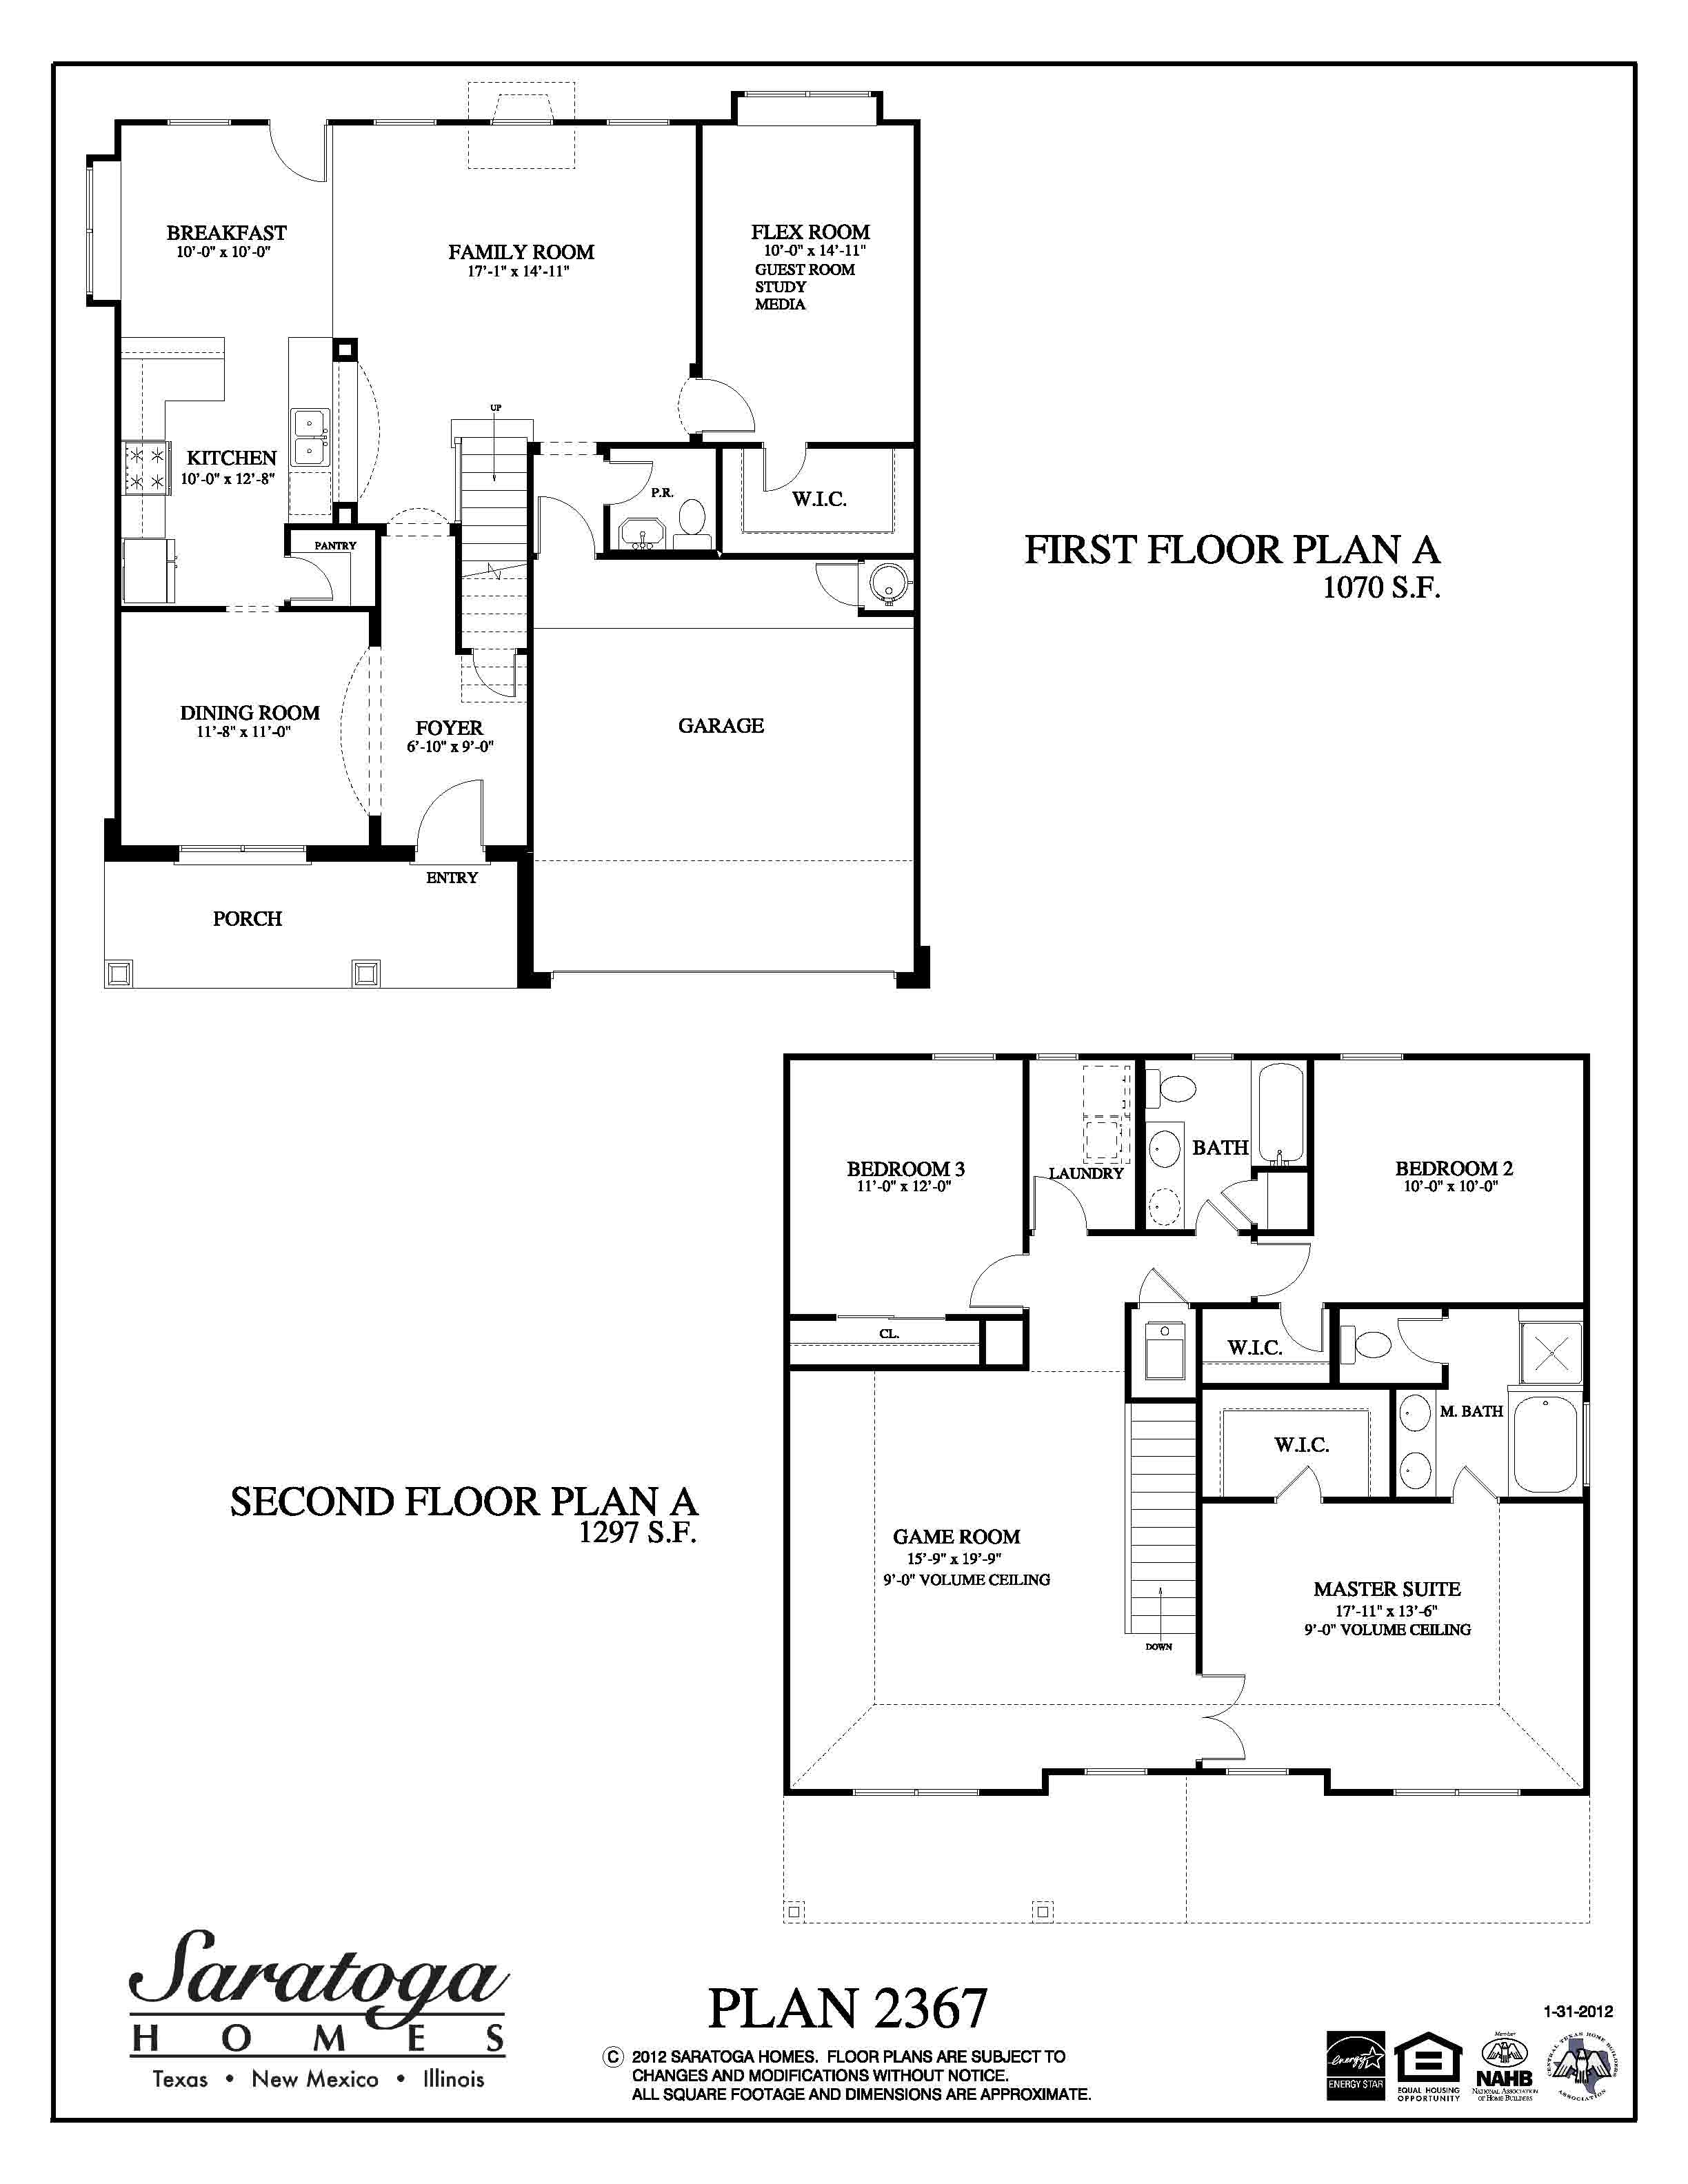 Plan 2367 saratoga homes houston for Houston home builders floor plans